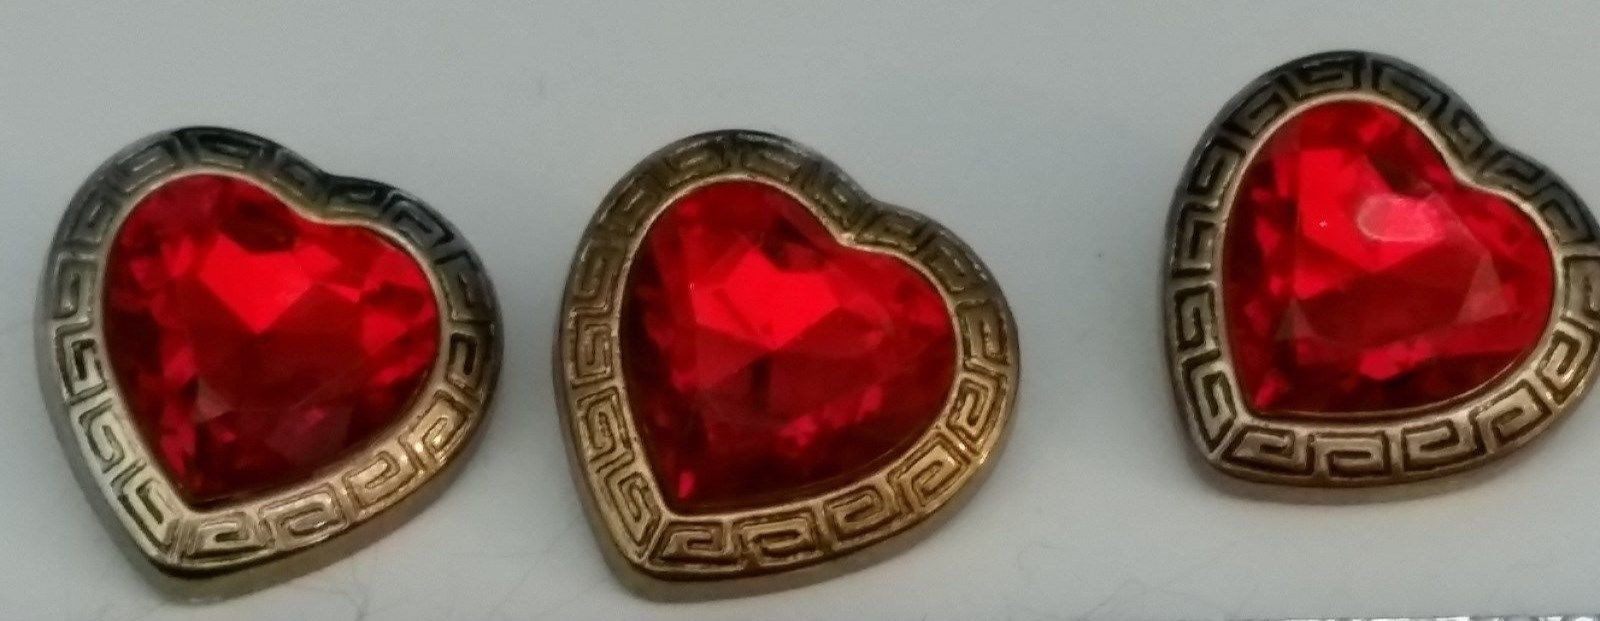 VINTAGE HEART SHAPED BUTTONS